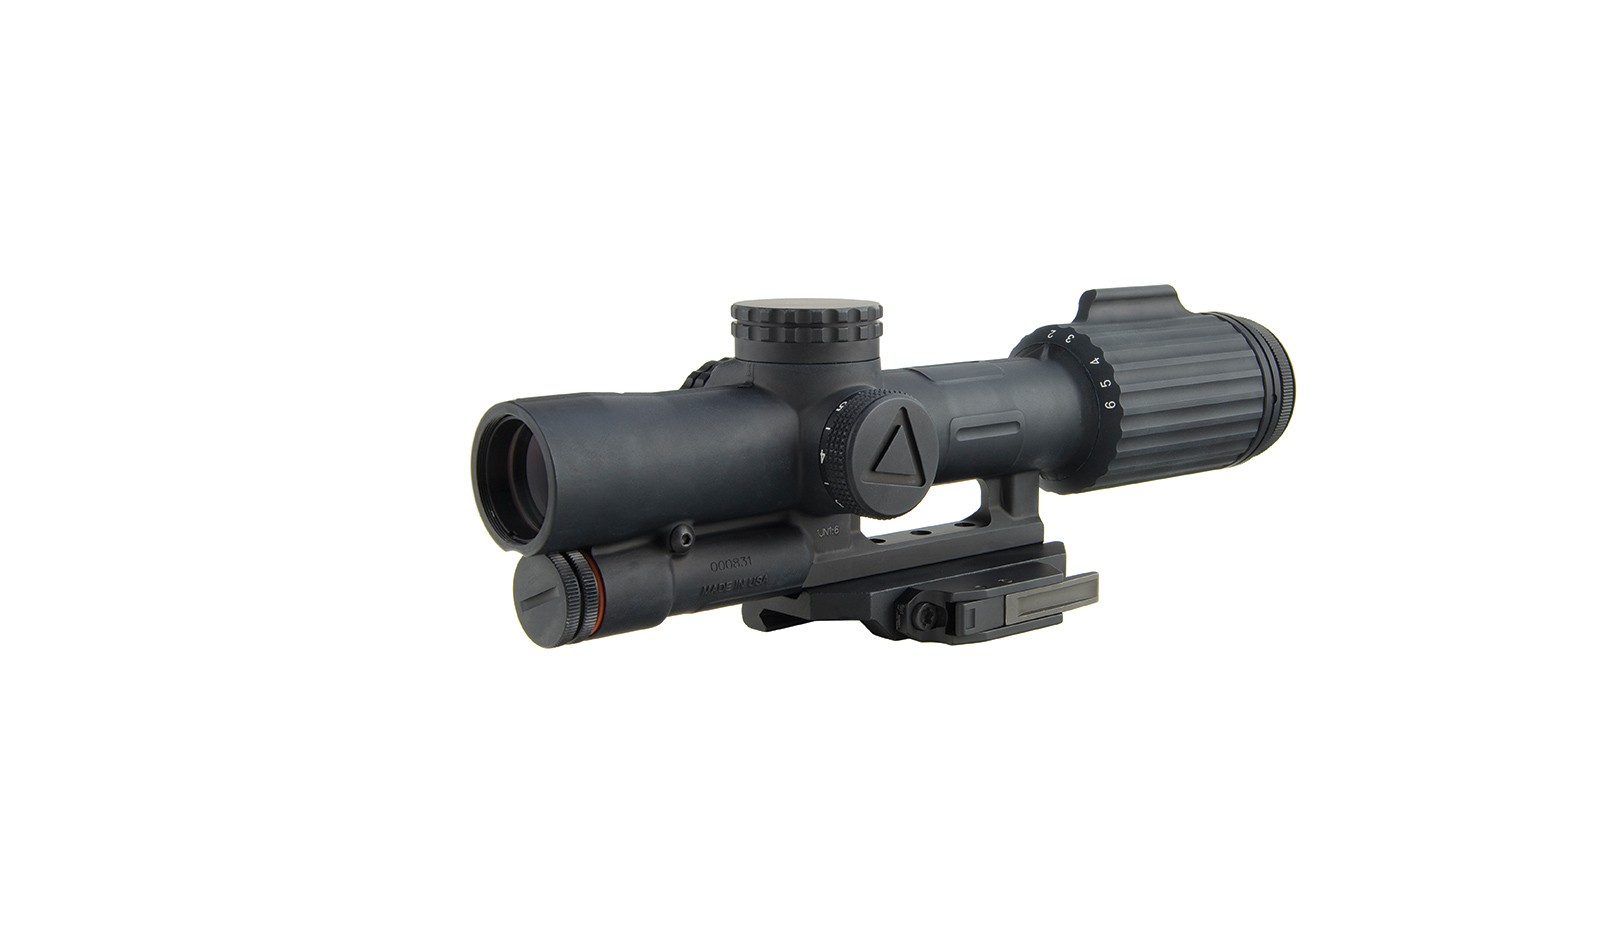 Trijicon VCOG® 1-6x24 LED Riflescope - .223 / 77 Grain